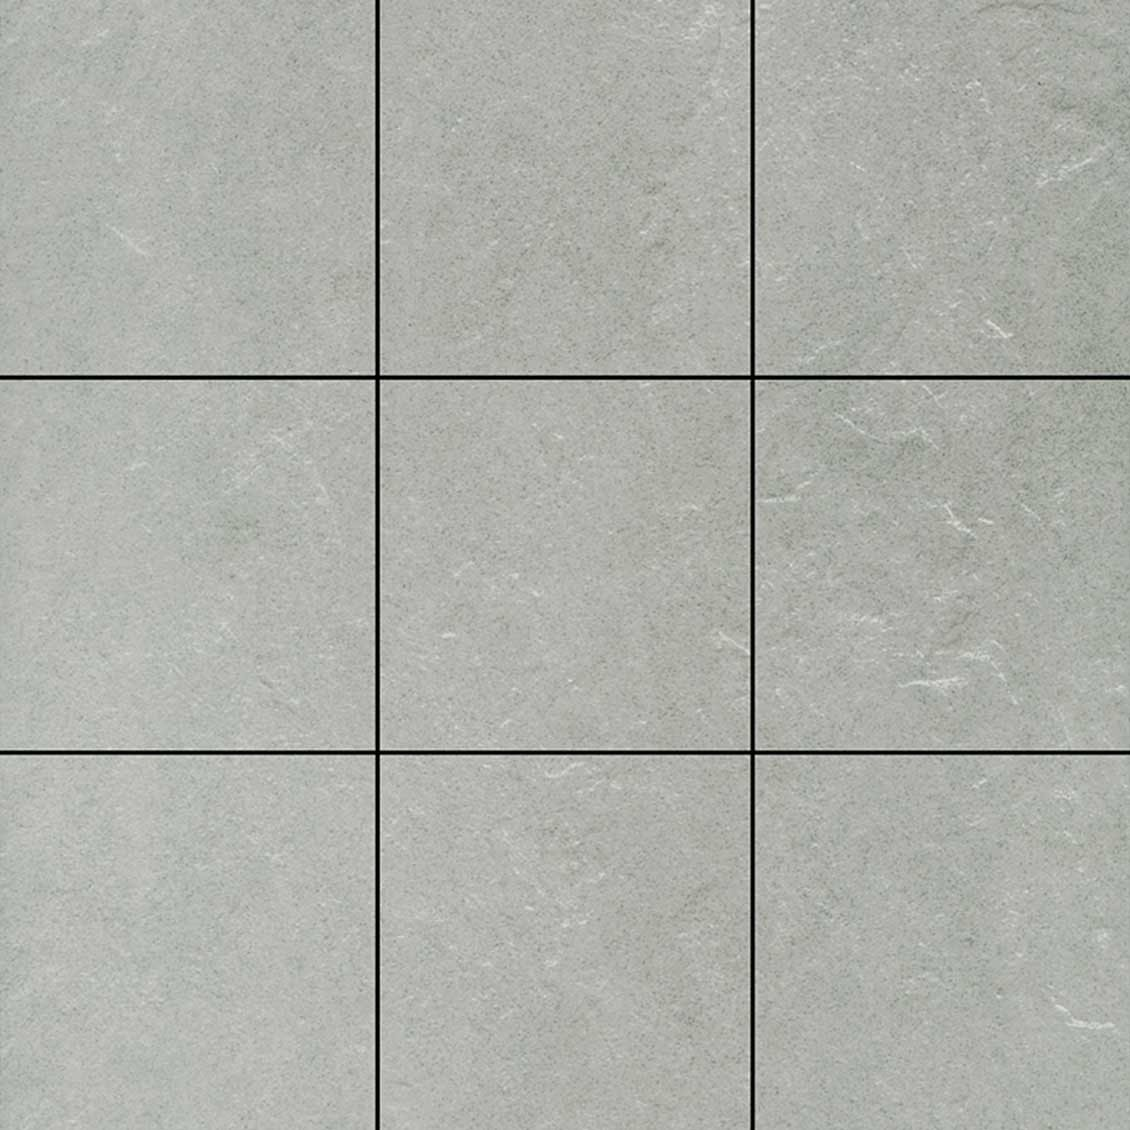 Carrelage Design Of Carrelage Design Carrelage Texture Moderne Design Pour